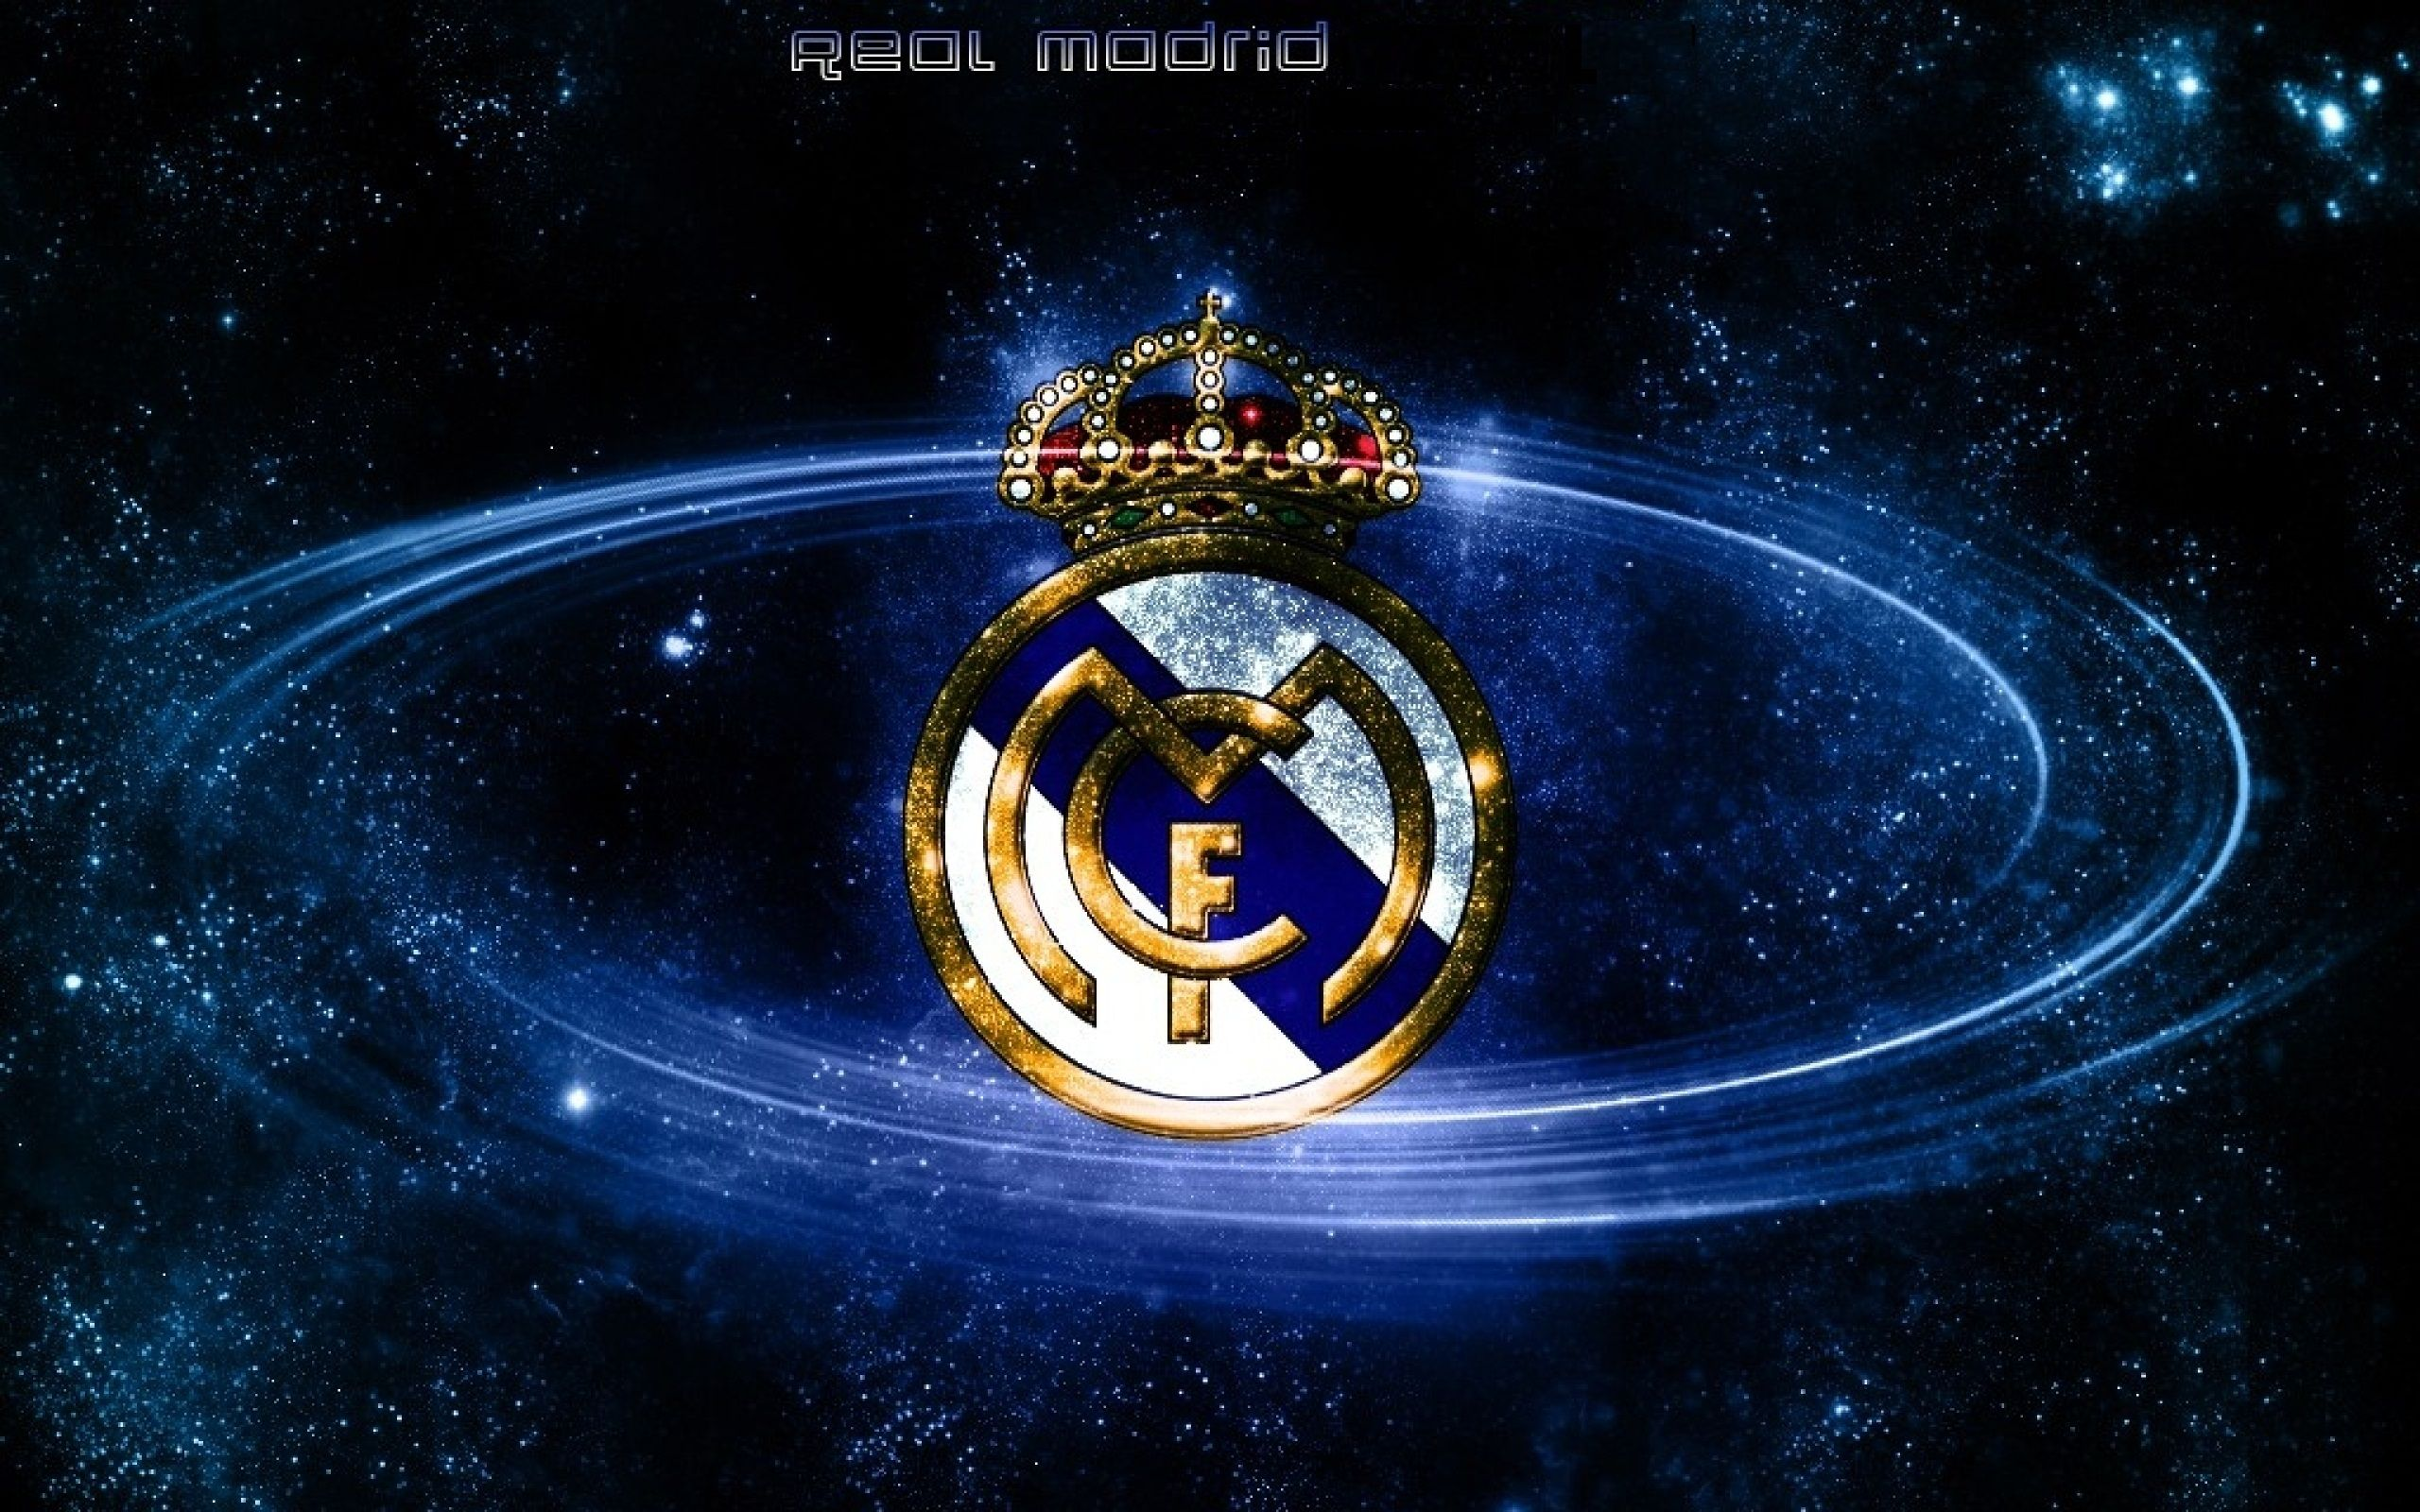 Real Madrid Hd Wallpapers Real Madrid Wallpapers Real Madrid Logo Real Madrid Logo Wallpapers